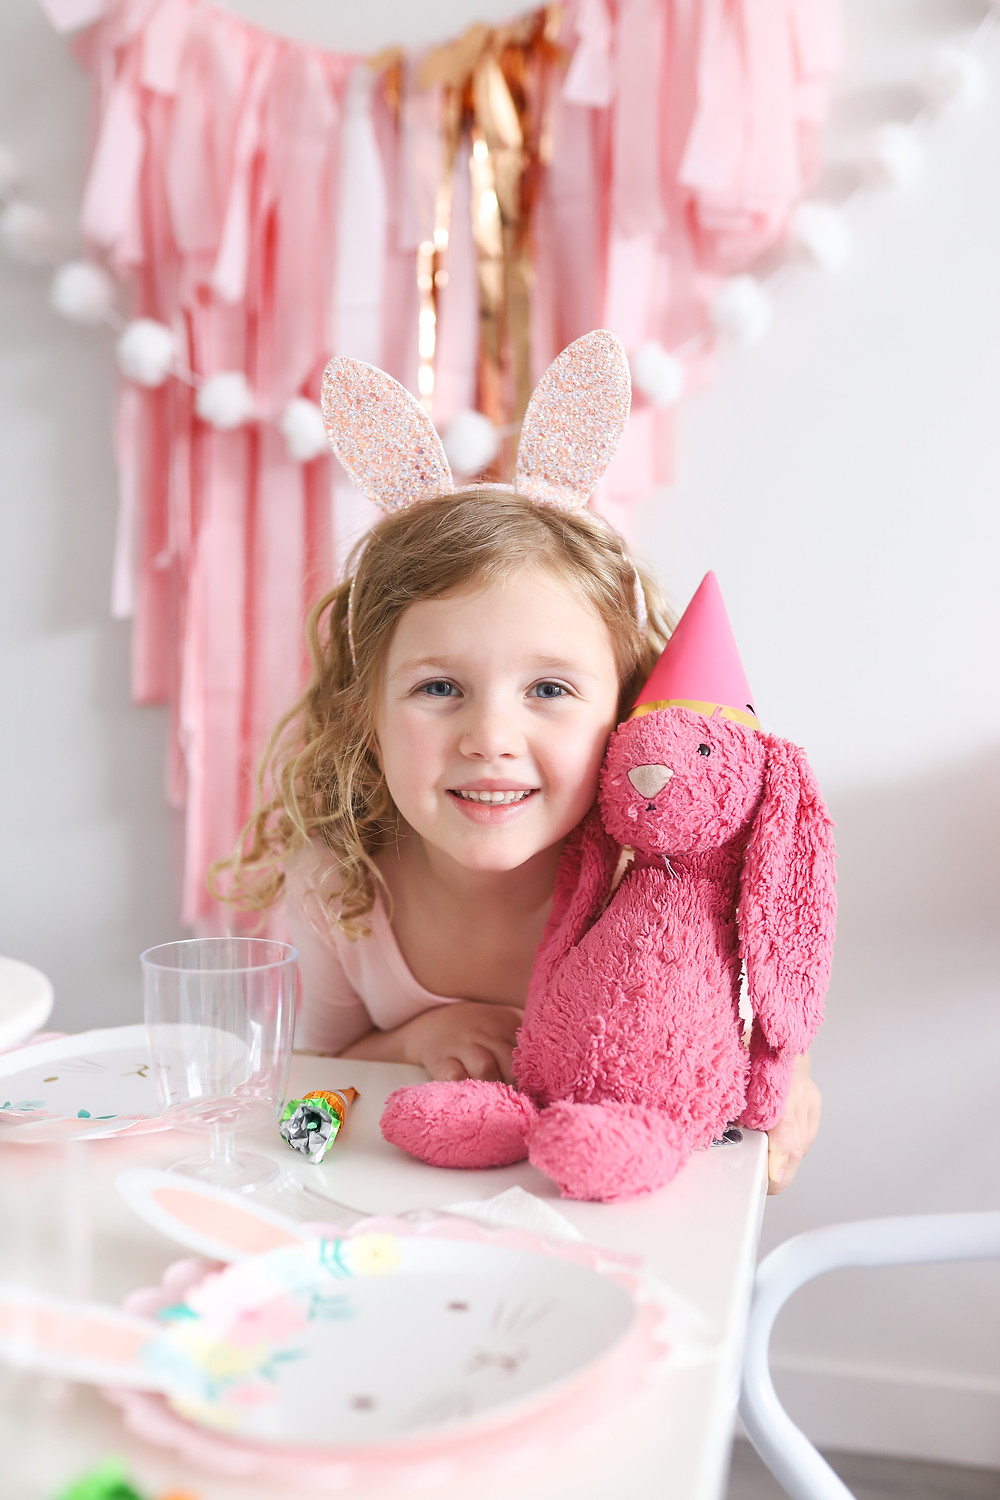 A little girl with curly blonde hair wearing bunny ears sitting at a party table with her pink stuffed bunny who is wearing a party hat.